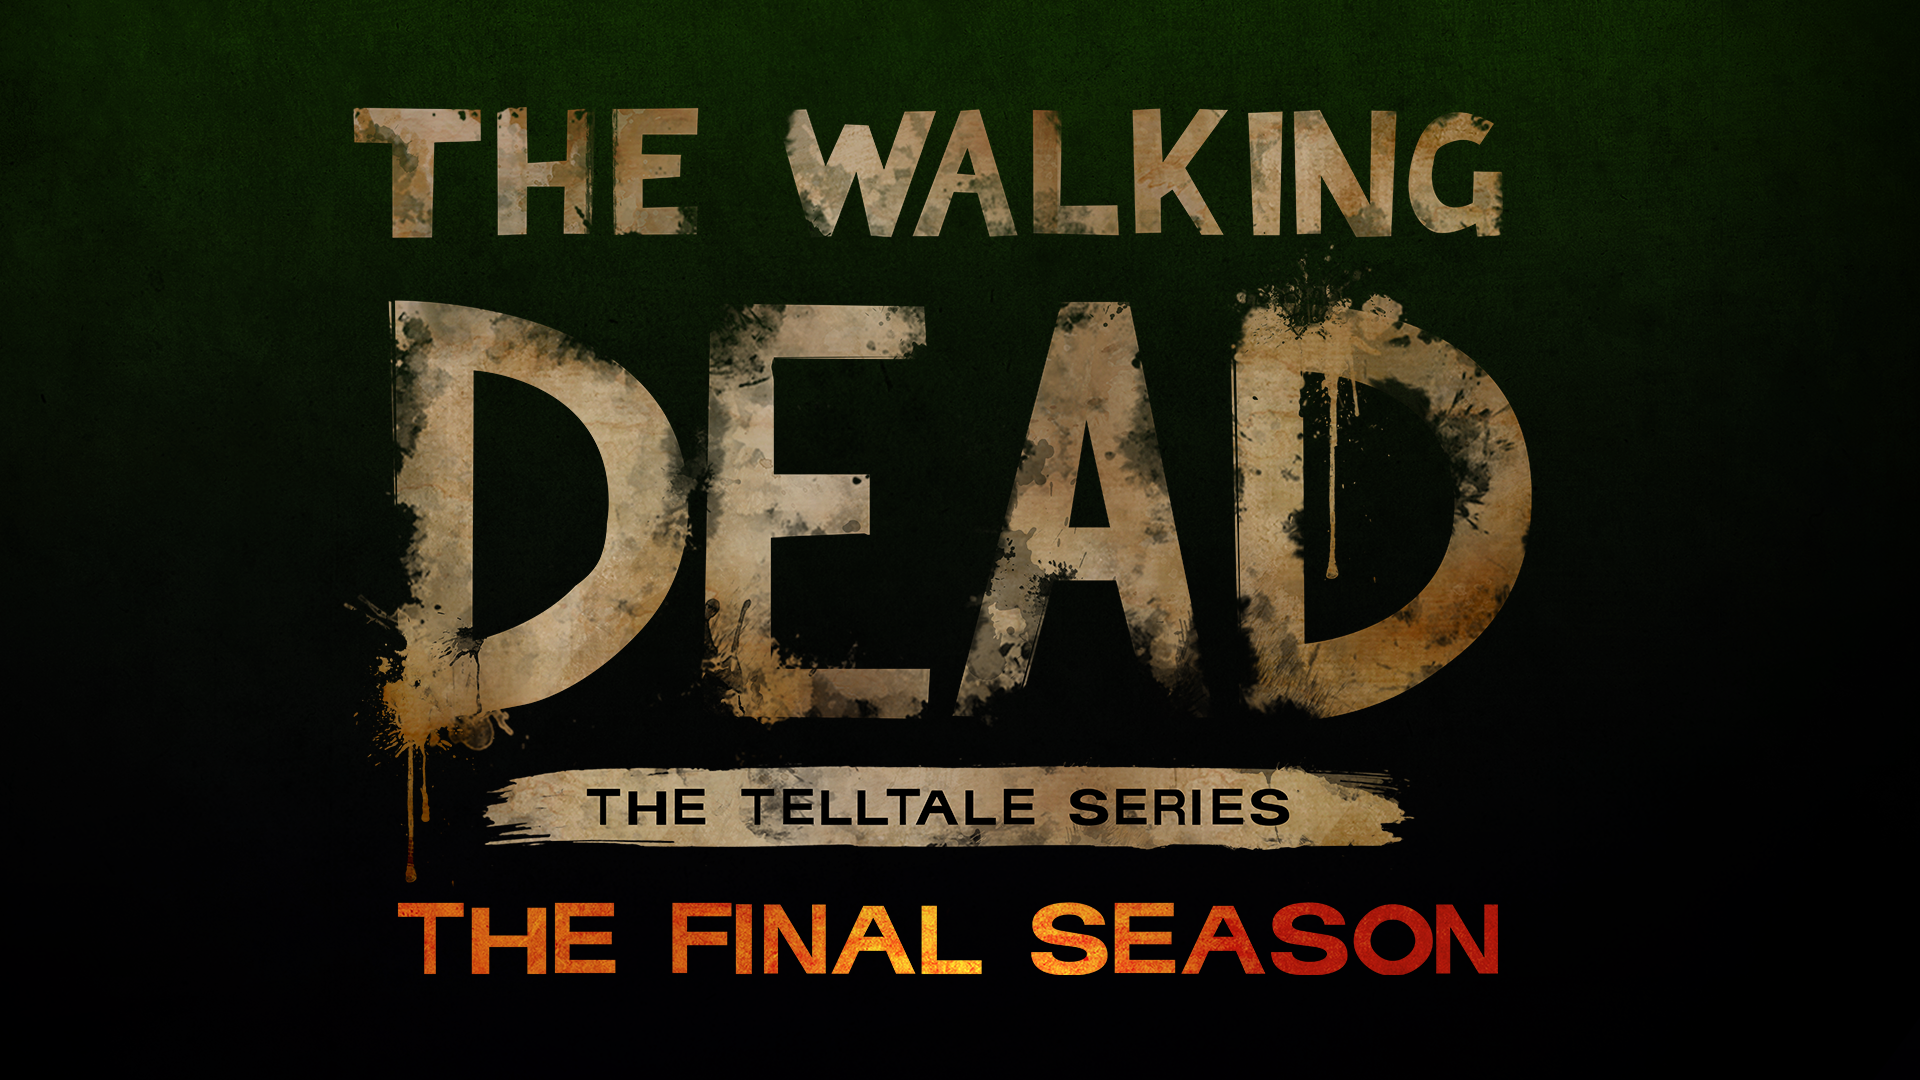 Telltale games - The Walking Dead: The Final Season